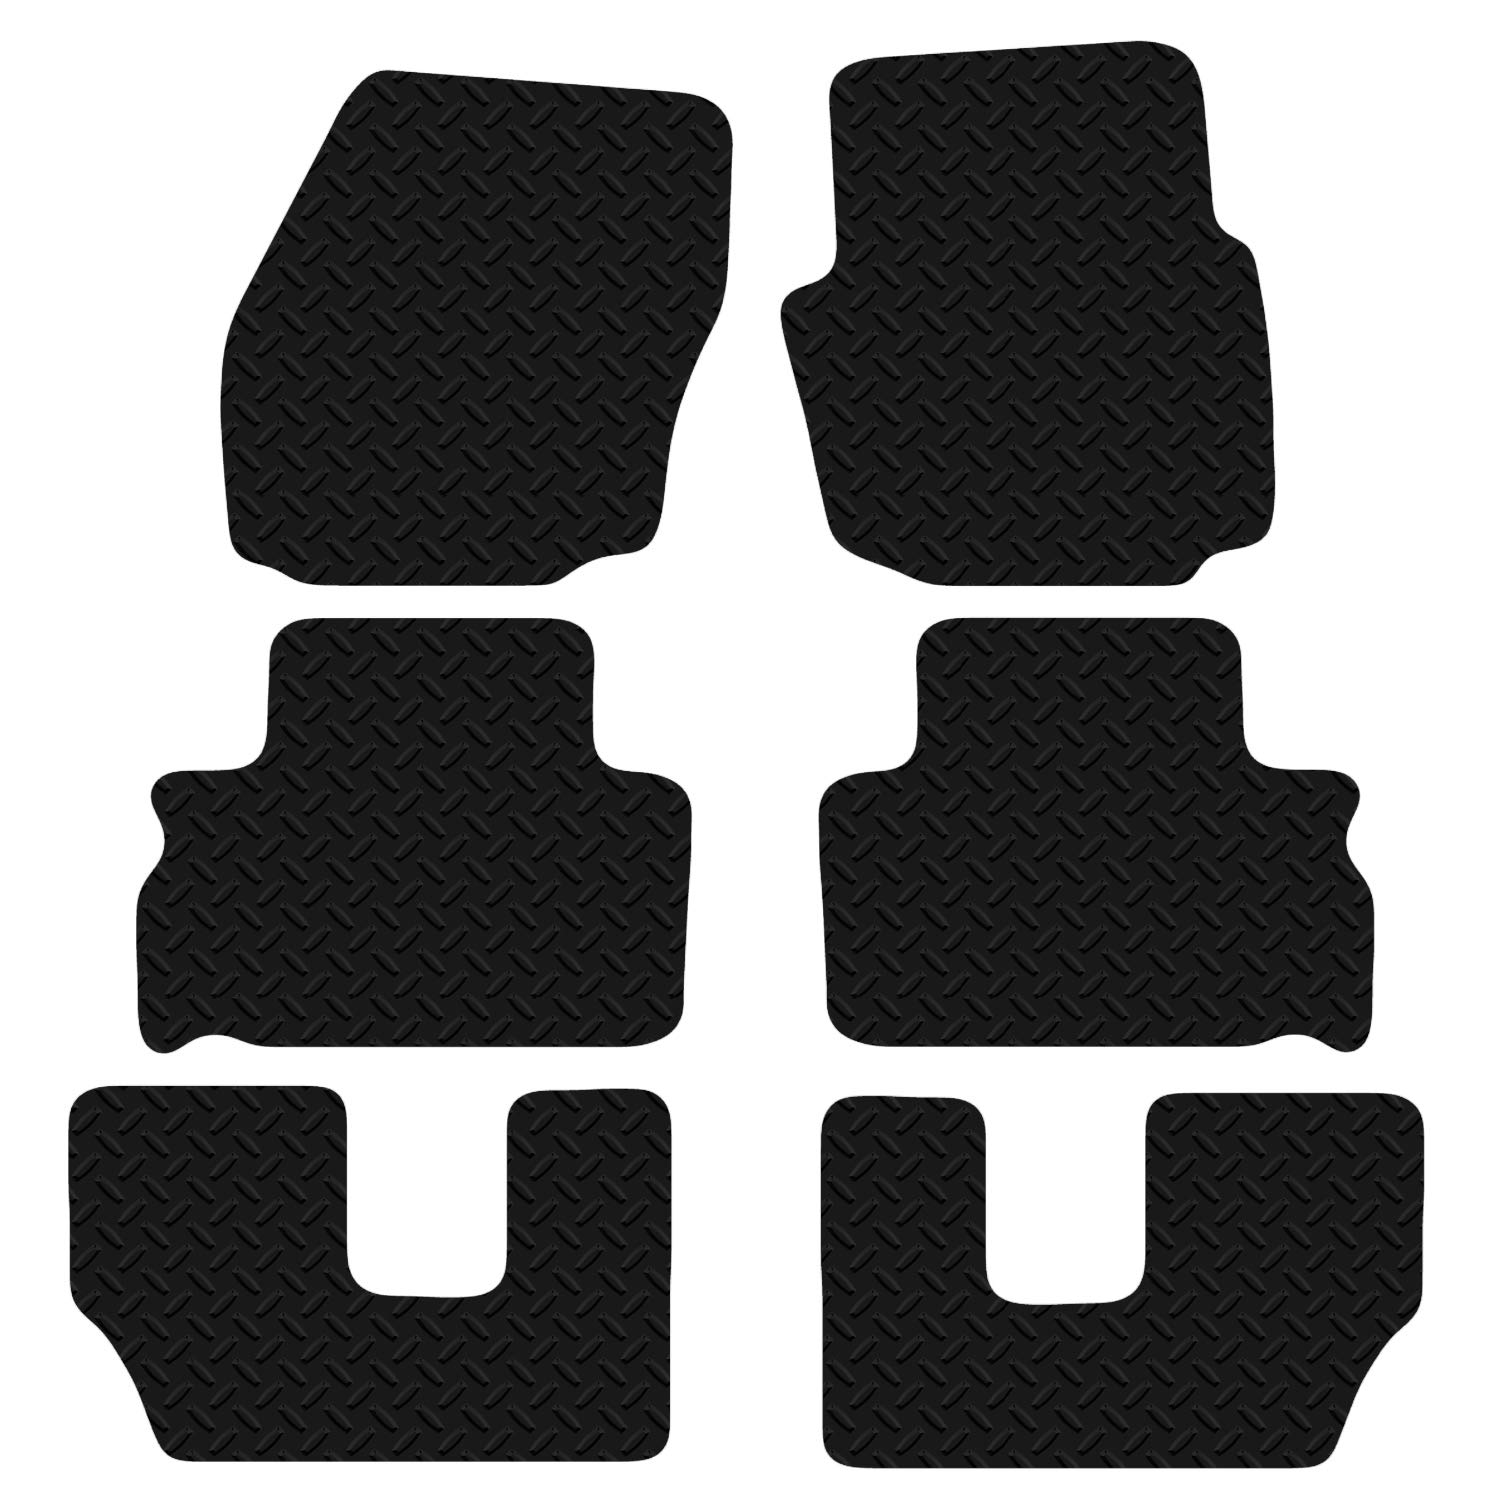 Black Floor Rubber Tailored Car Mat 3mm 6pc Set FOR Ford S-Max 7 Seater 2006 Onwards